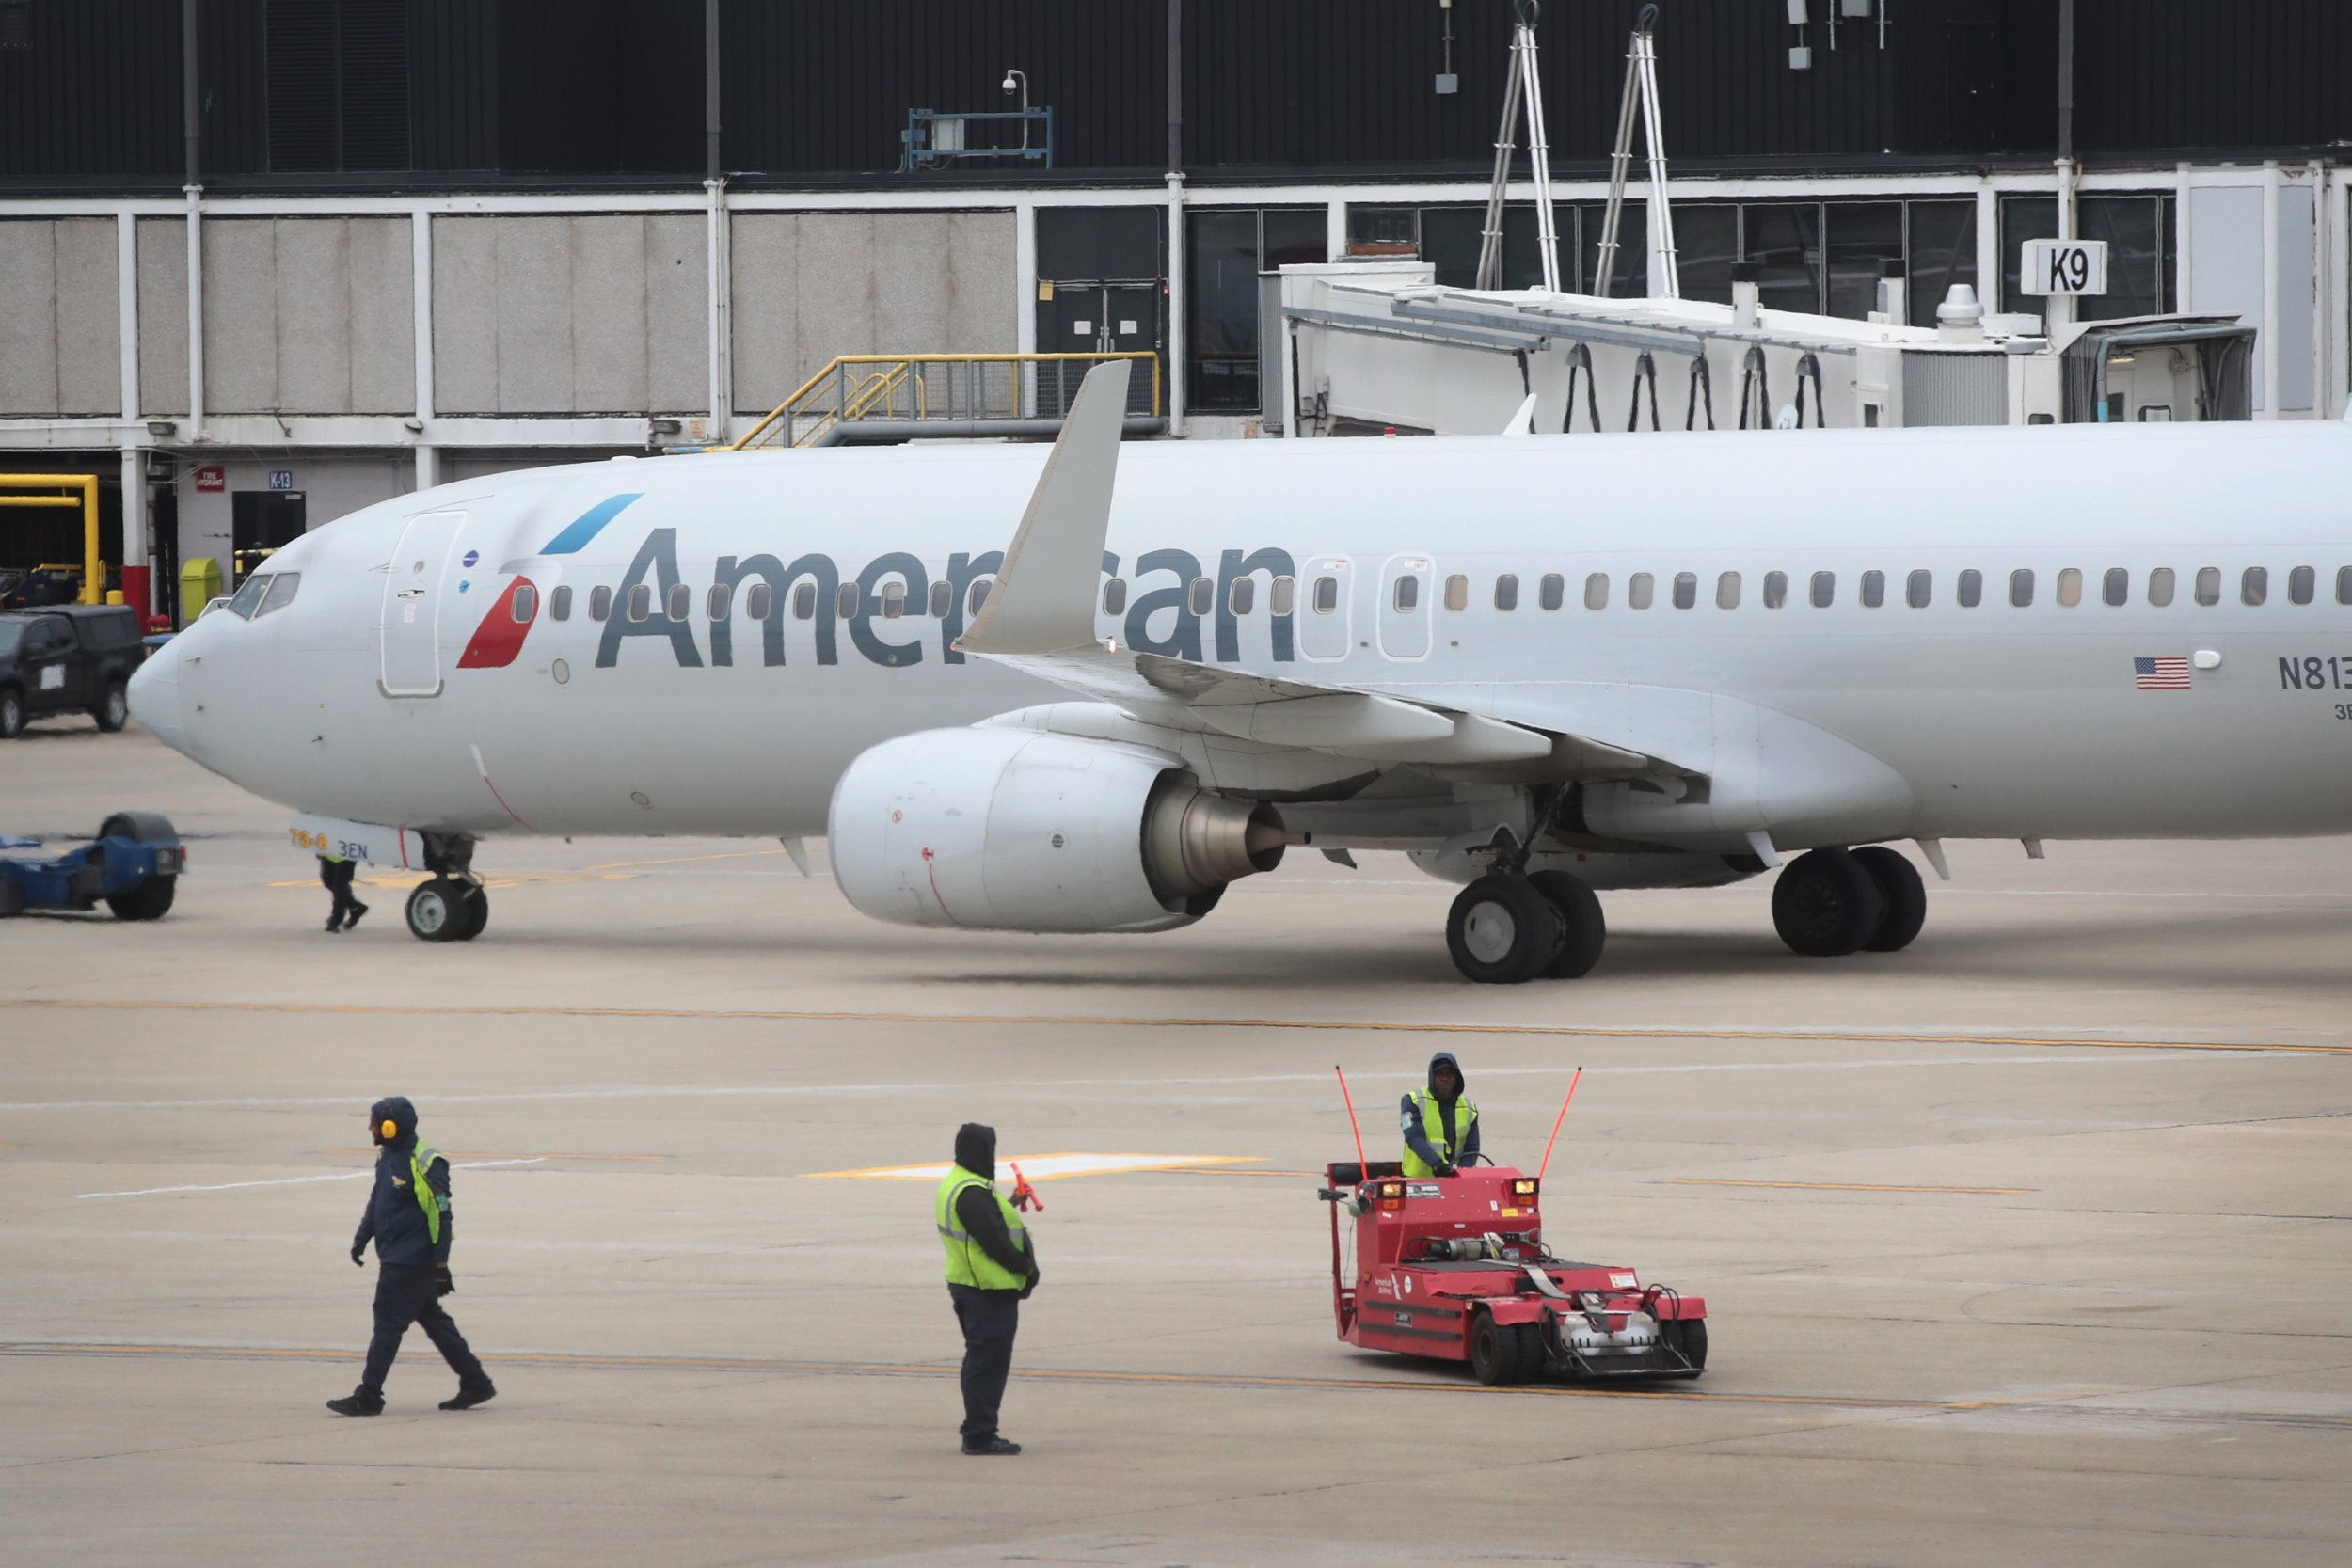 Flig American Airlines Jets Ready - Gonzagasports